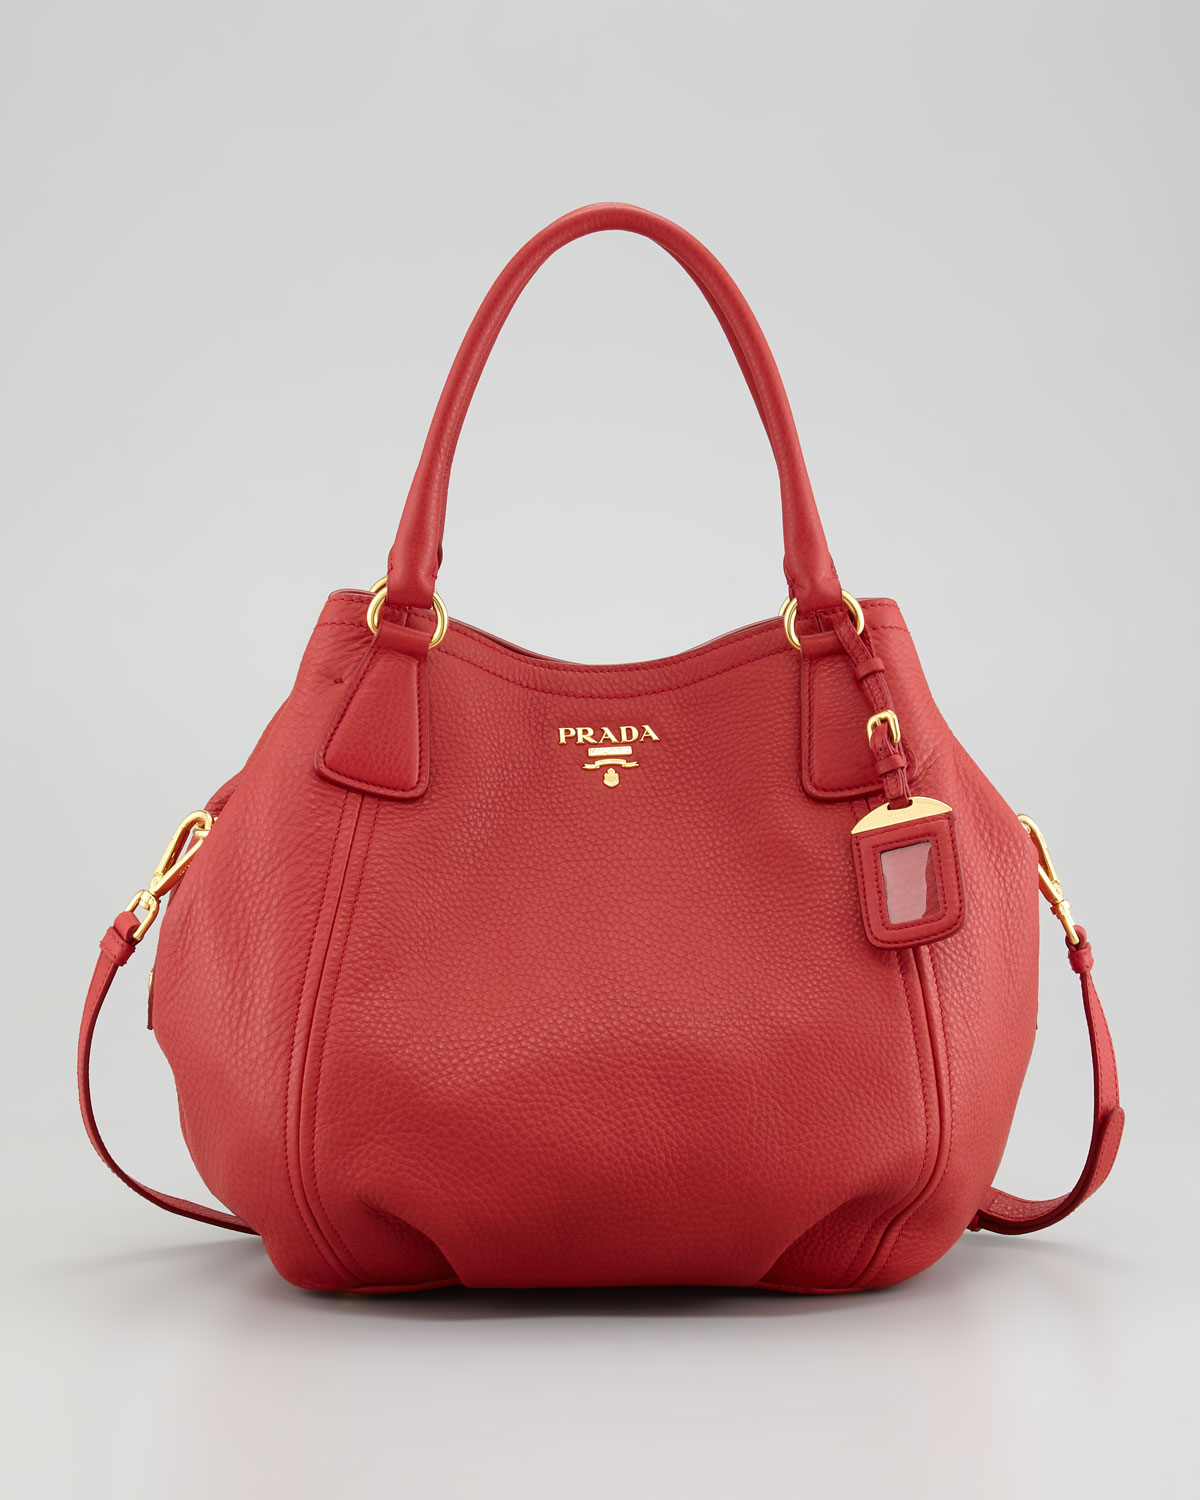 6058aa5746 ... coupon code for lyst prada vitello daino tote bag in red cca67 1a13d